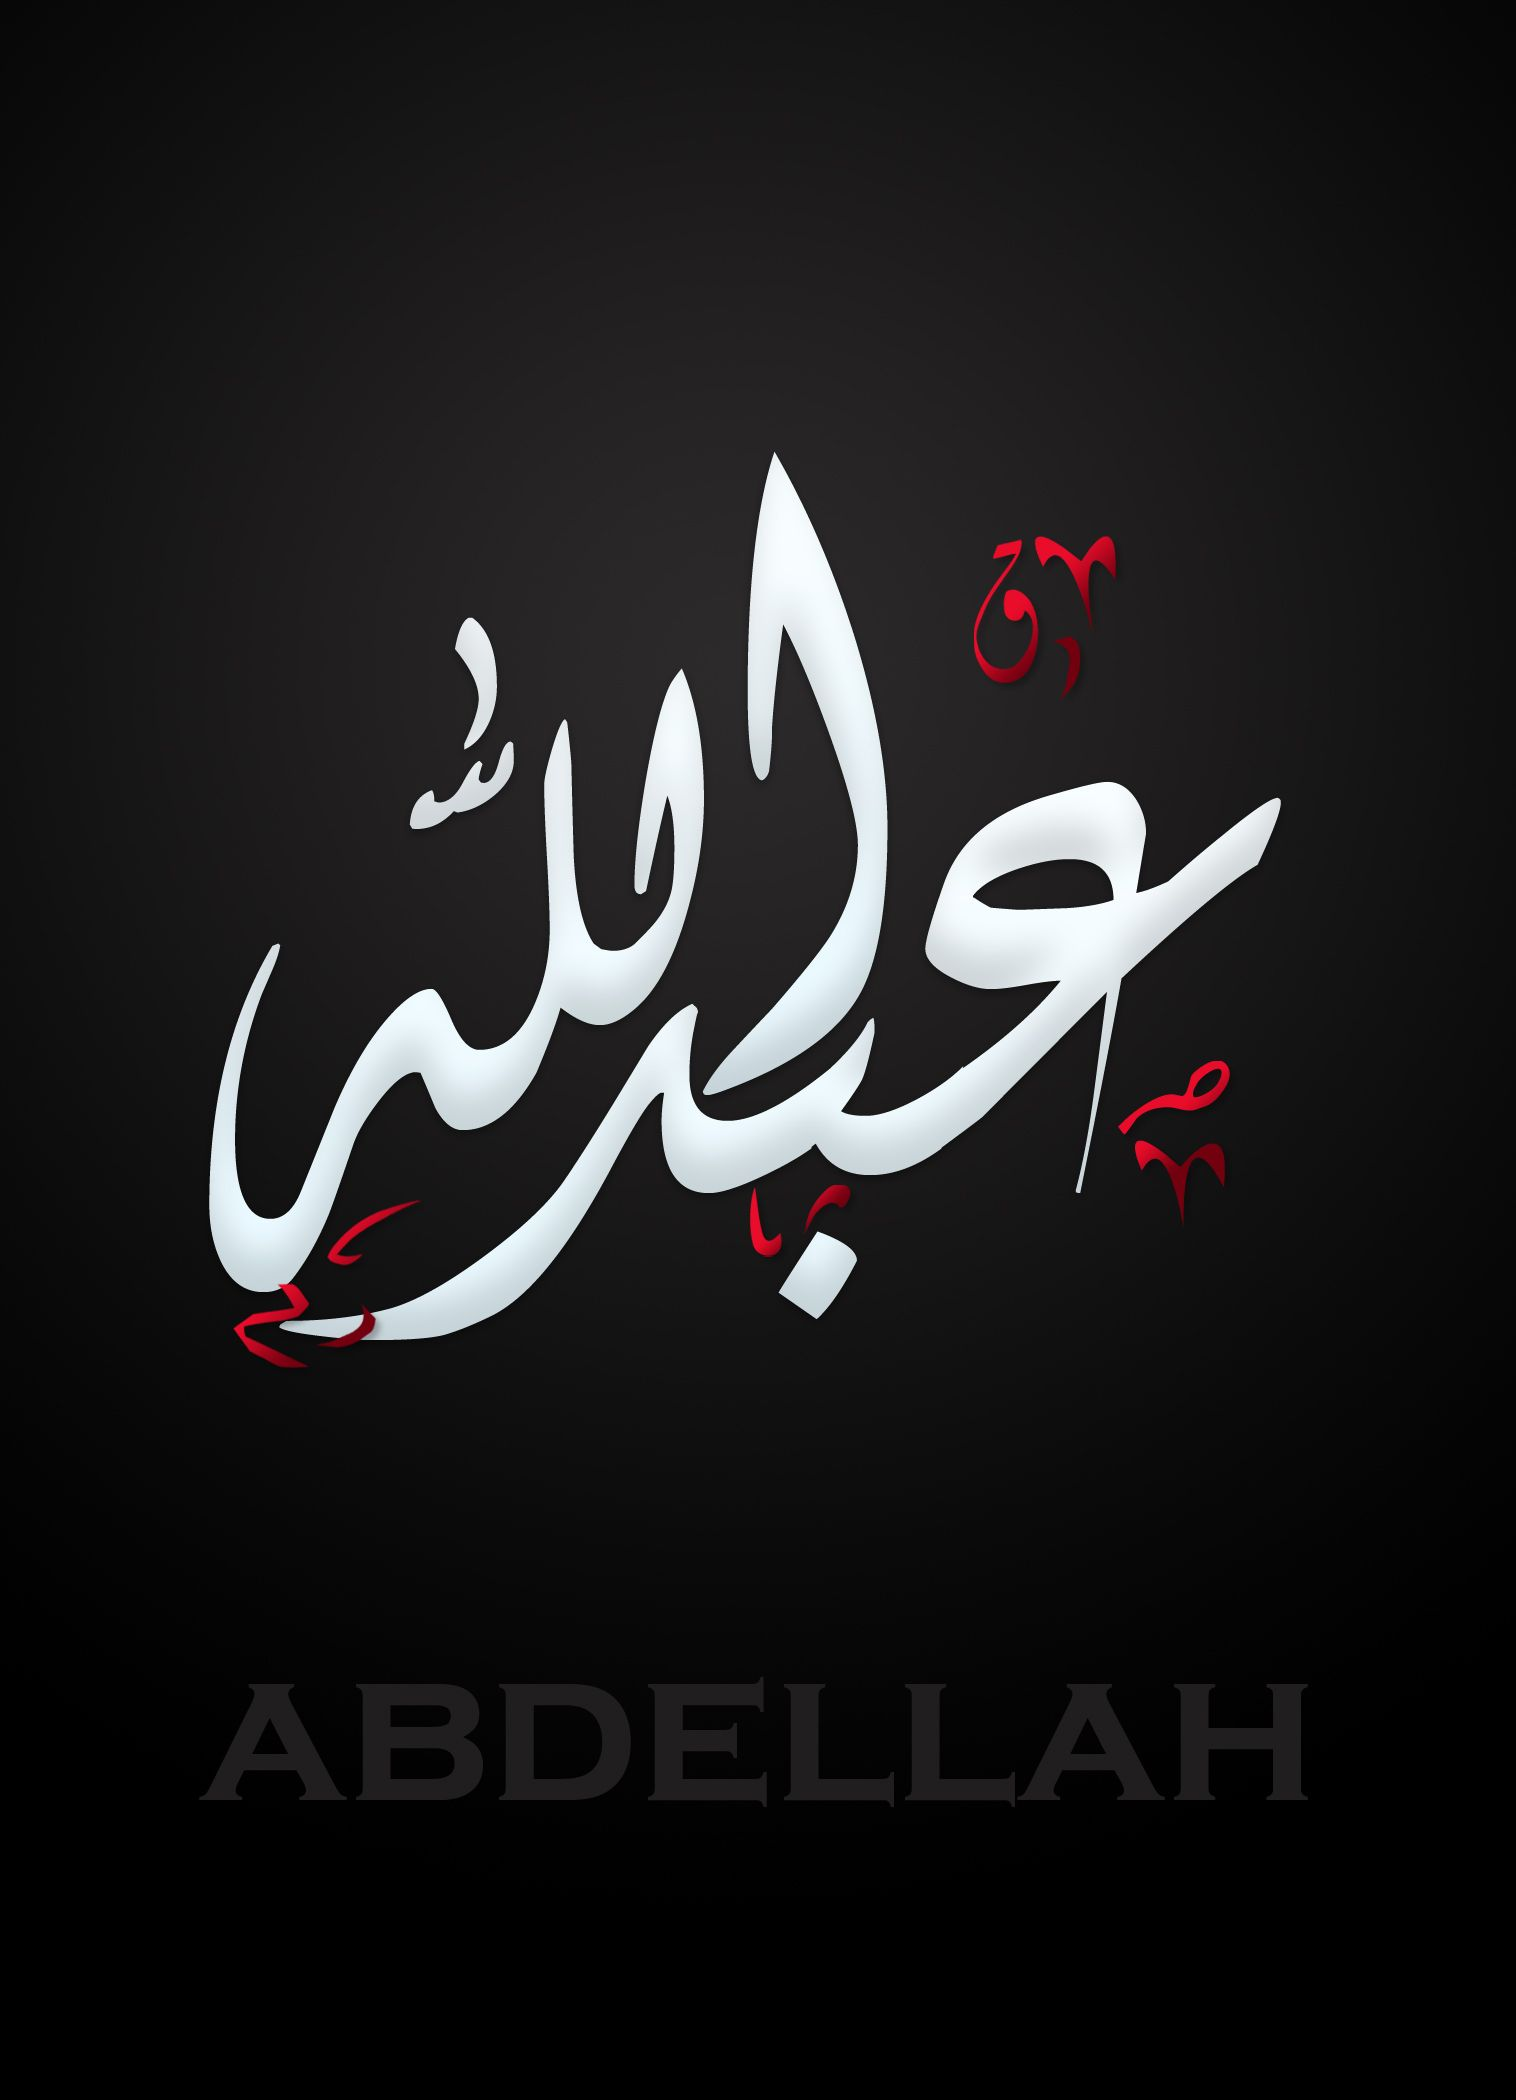 000 abdellah ____ عبد الله Names Pinterest Fonts